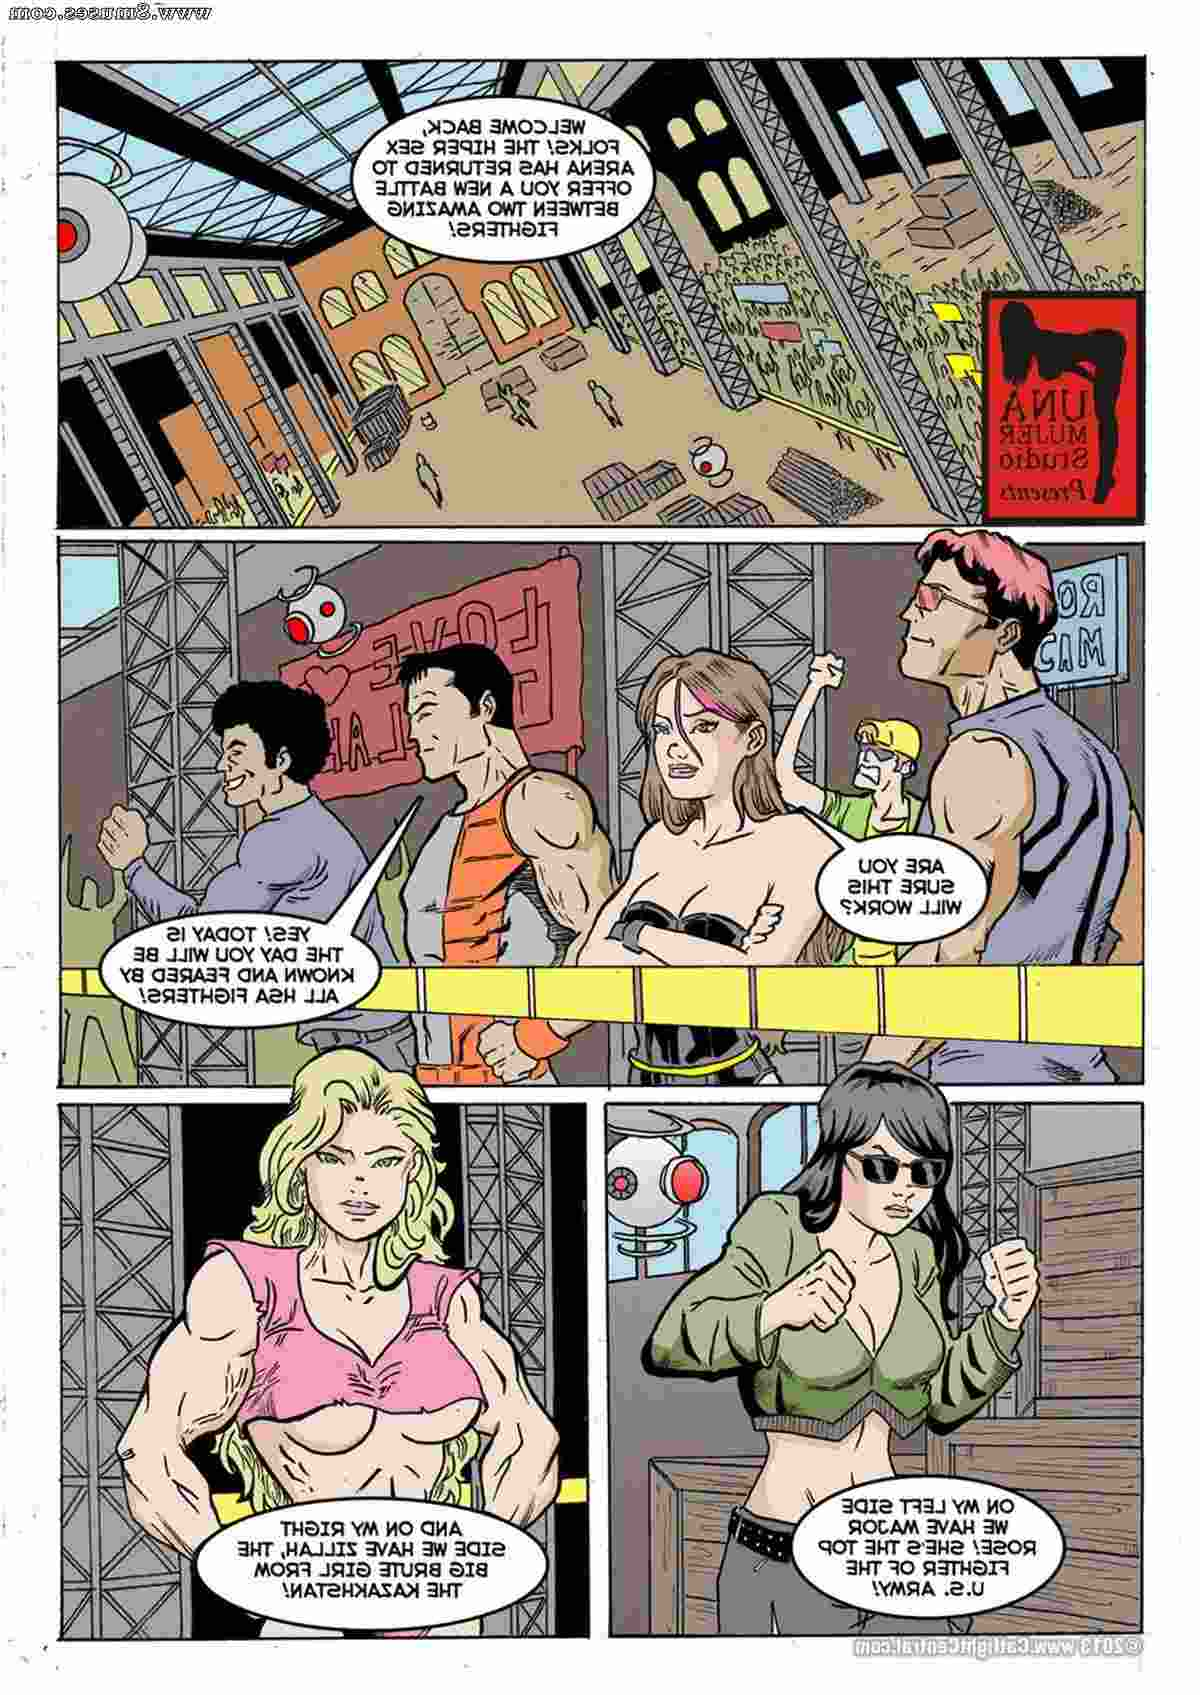 Central-Comics/Catfight-Central/Hipersex-Arena Hipersex_Arena__8muses_-_Sex_and_Porn_Comics_91.jpg